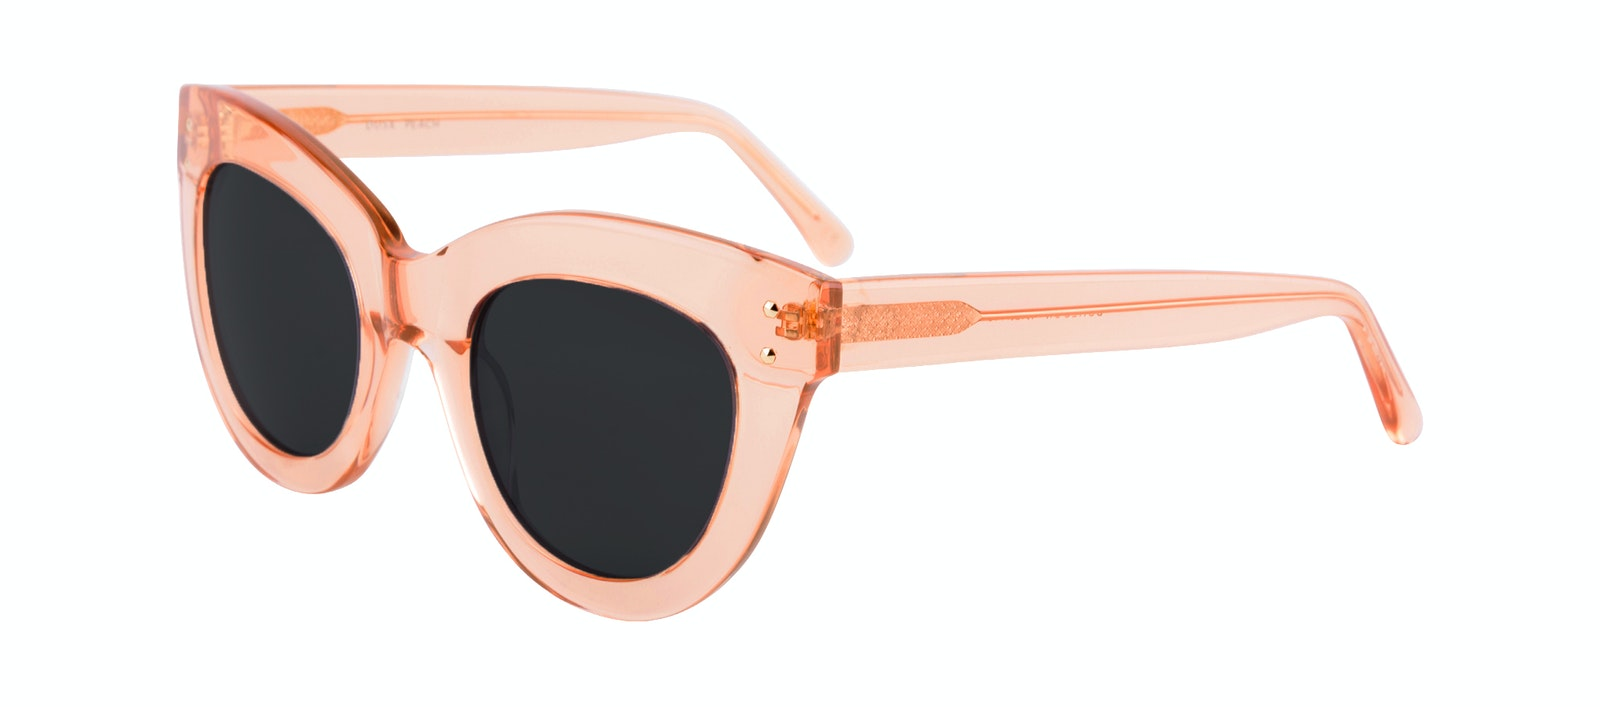 Affordable Fashion Glasses Cat Eye Sunglasses Women Dusk Peach Tilt